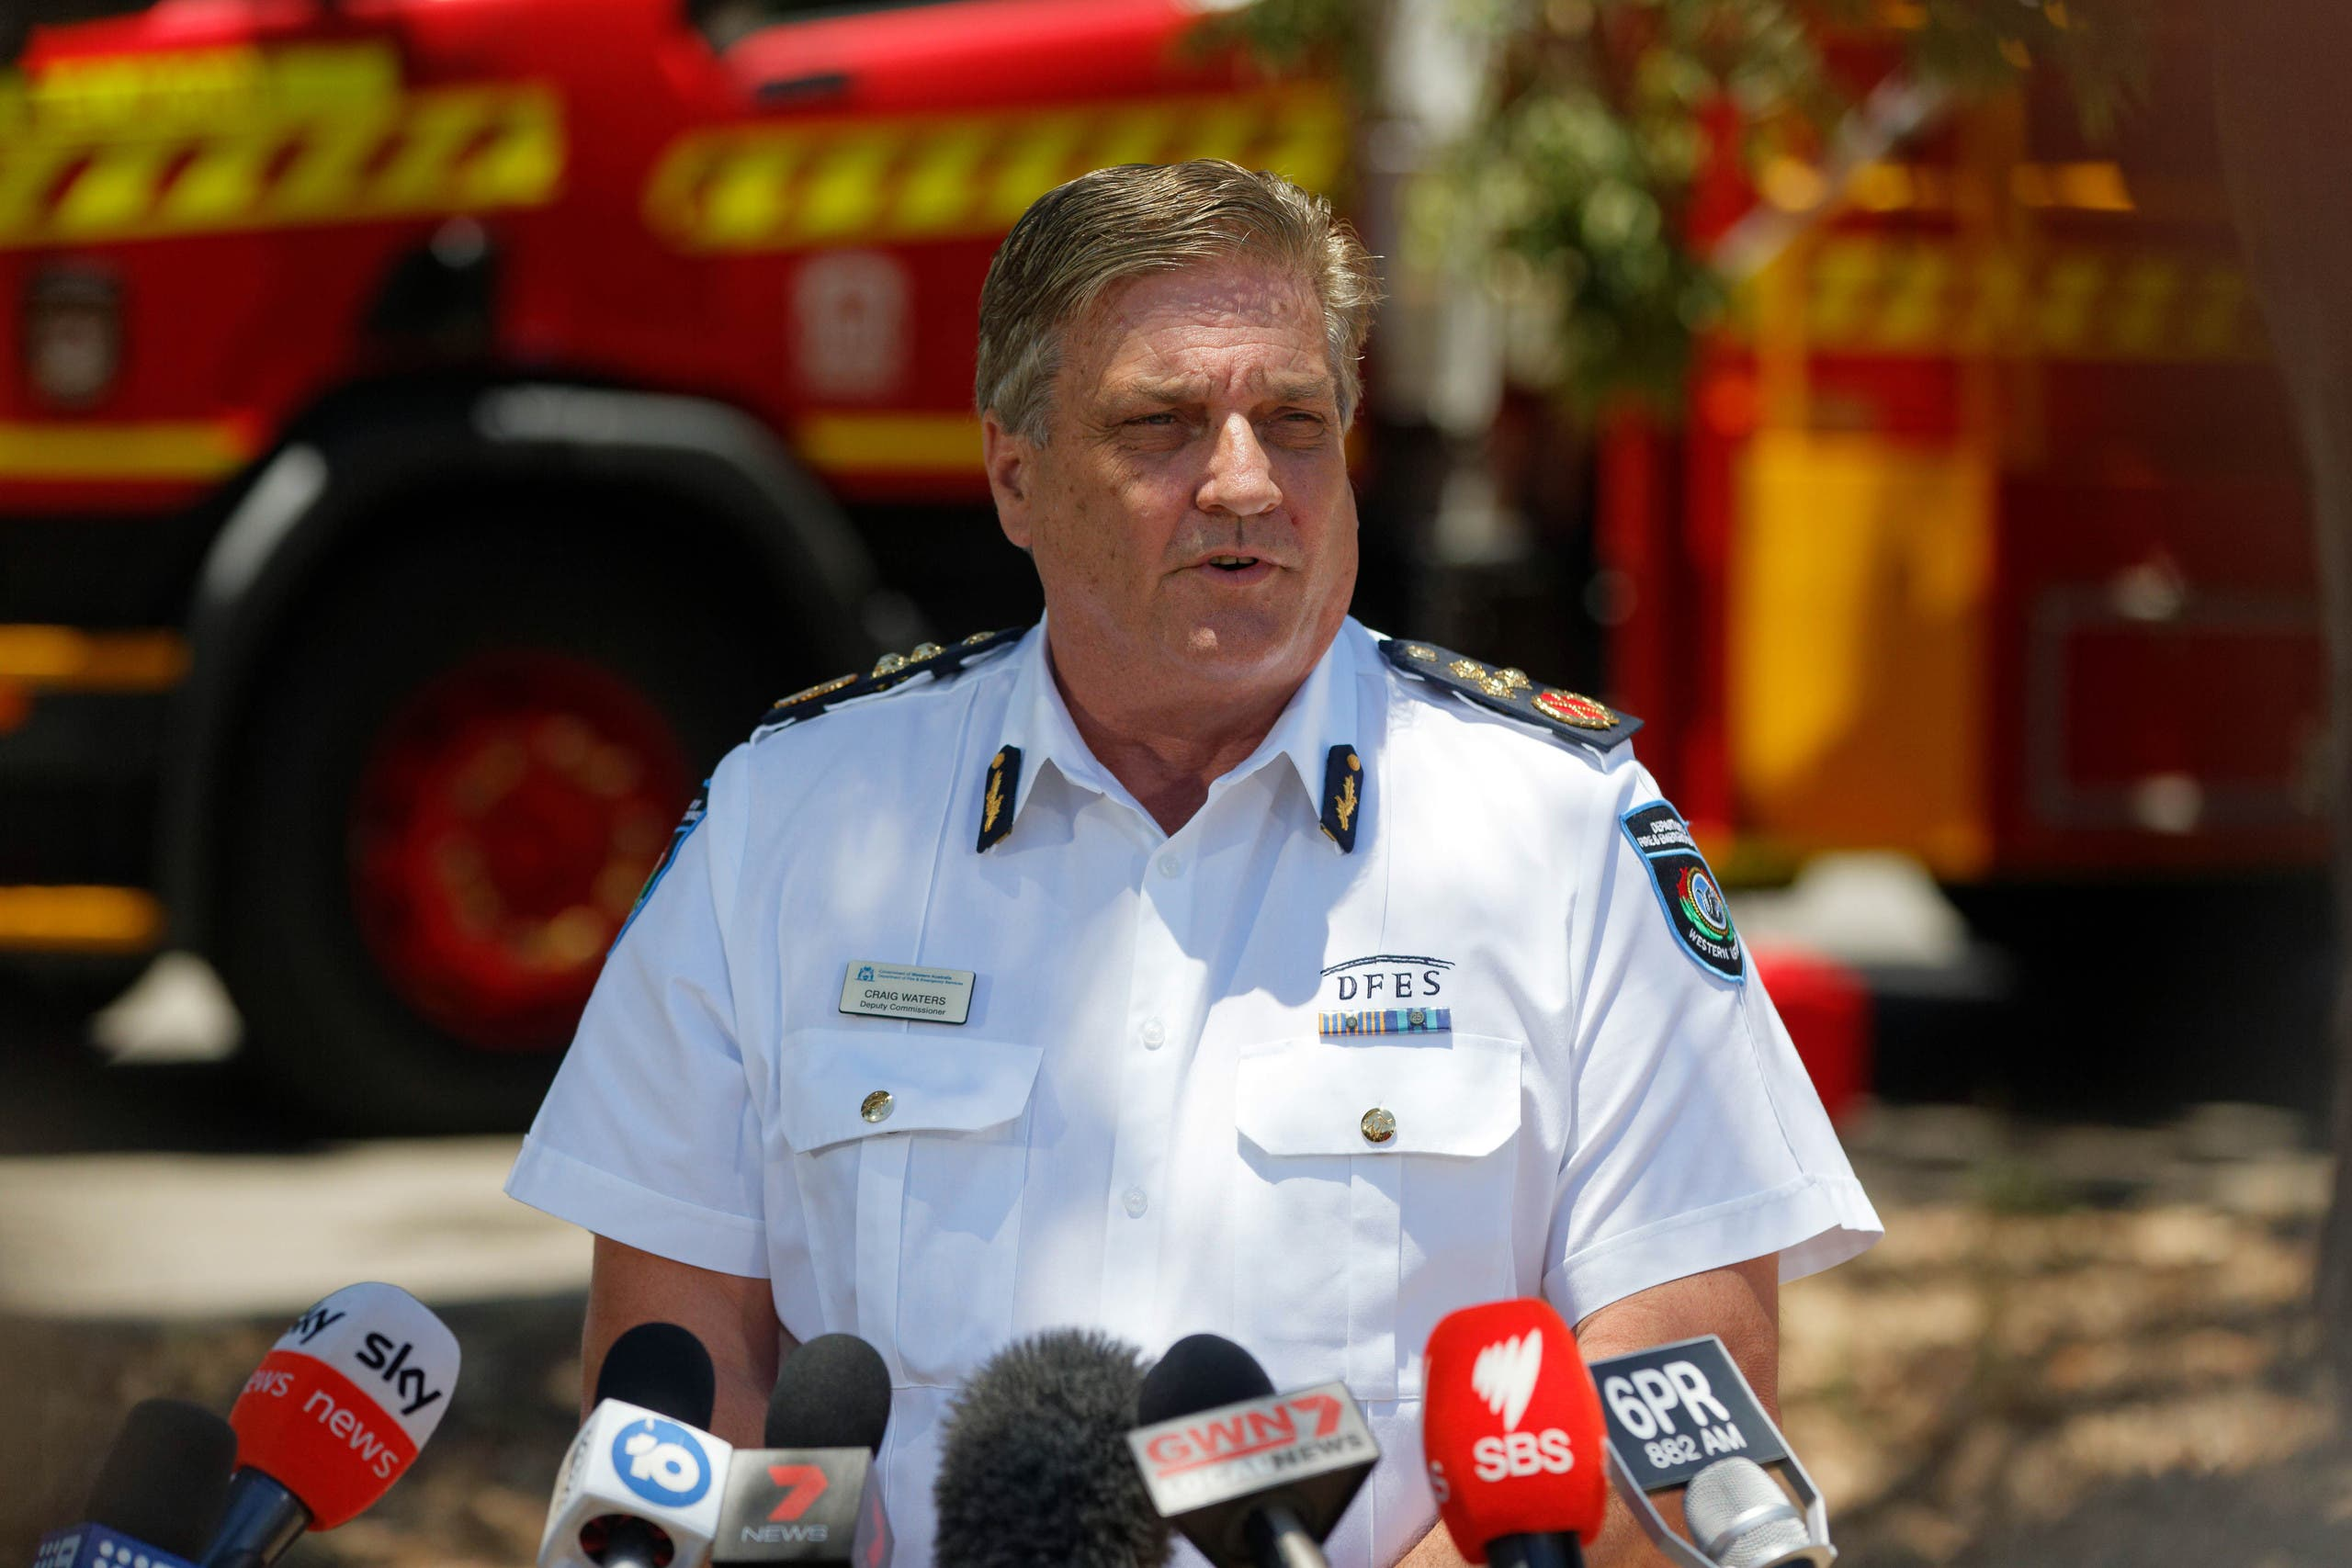 Craig Waters, Deputy Commissioner of the Western Australian Department of Fire and Emergency Services, briefs the media on the latest situation on bush fires in Kwinana, some 30 kilometres south of Perth on January 4, 2021. (AFP)